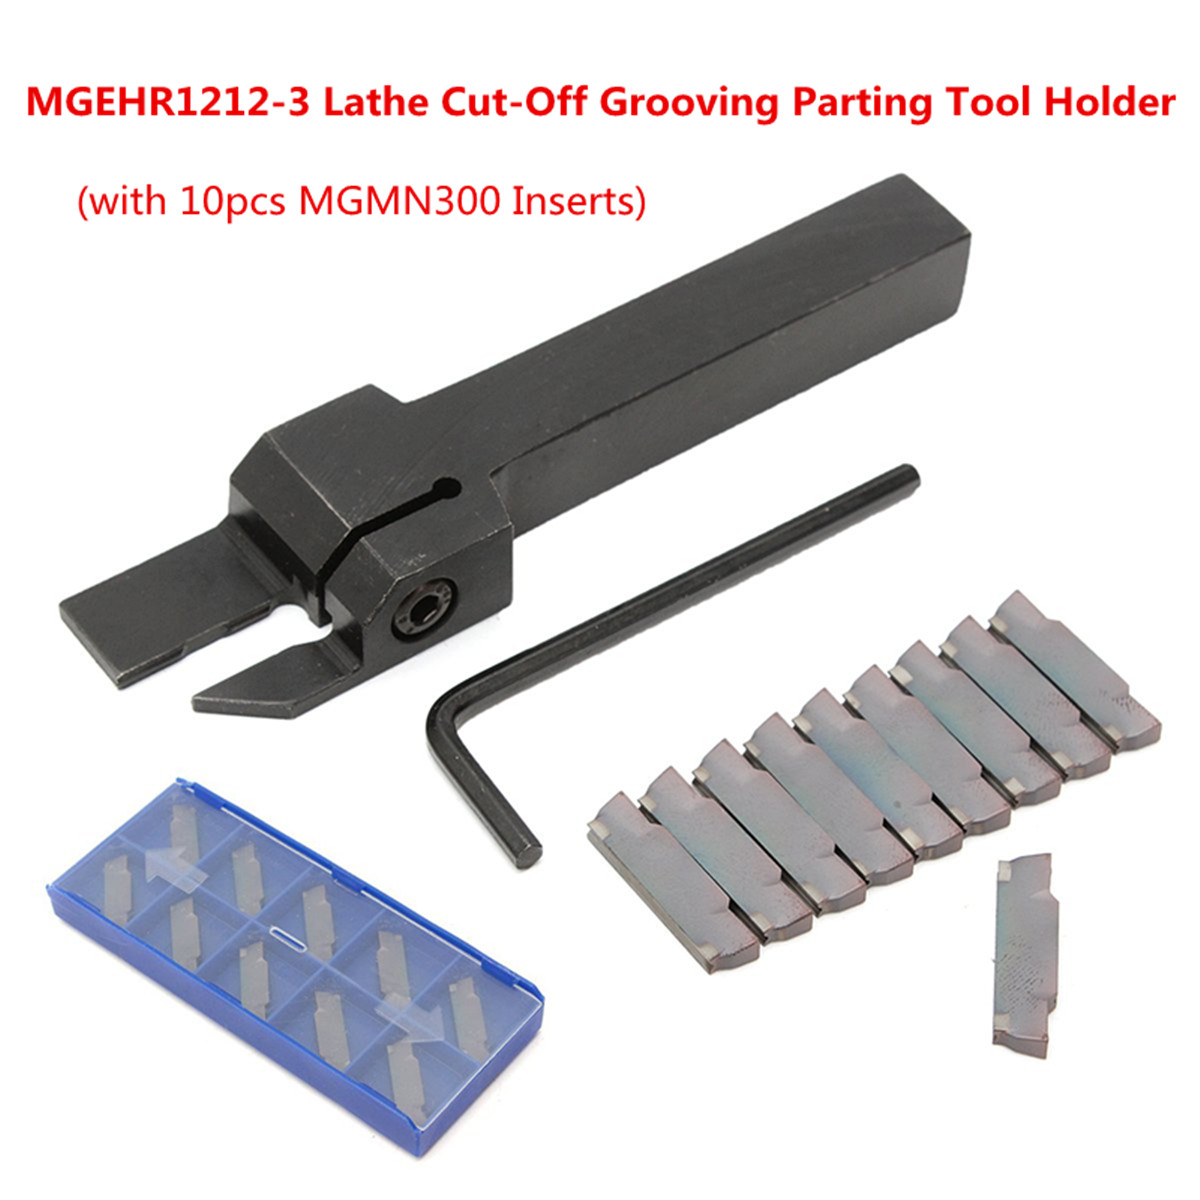 SPB26-3 PARTING GROOVING CUT-OFF CUTTER BLADES FOR LATHE TURNING TOOLS HOLDER OP